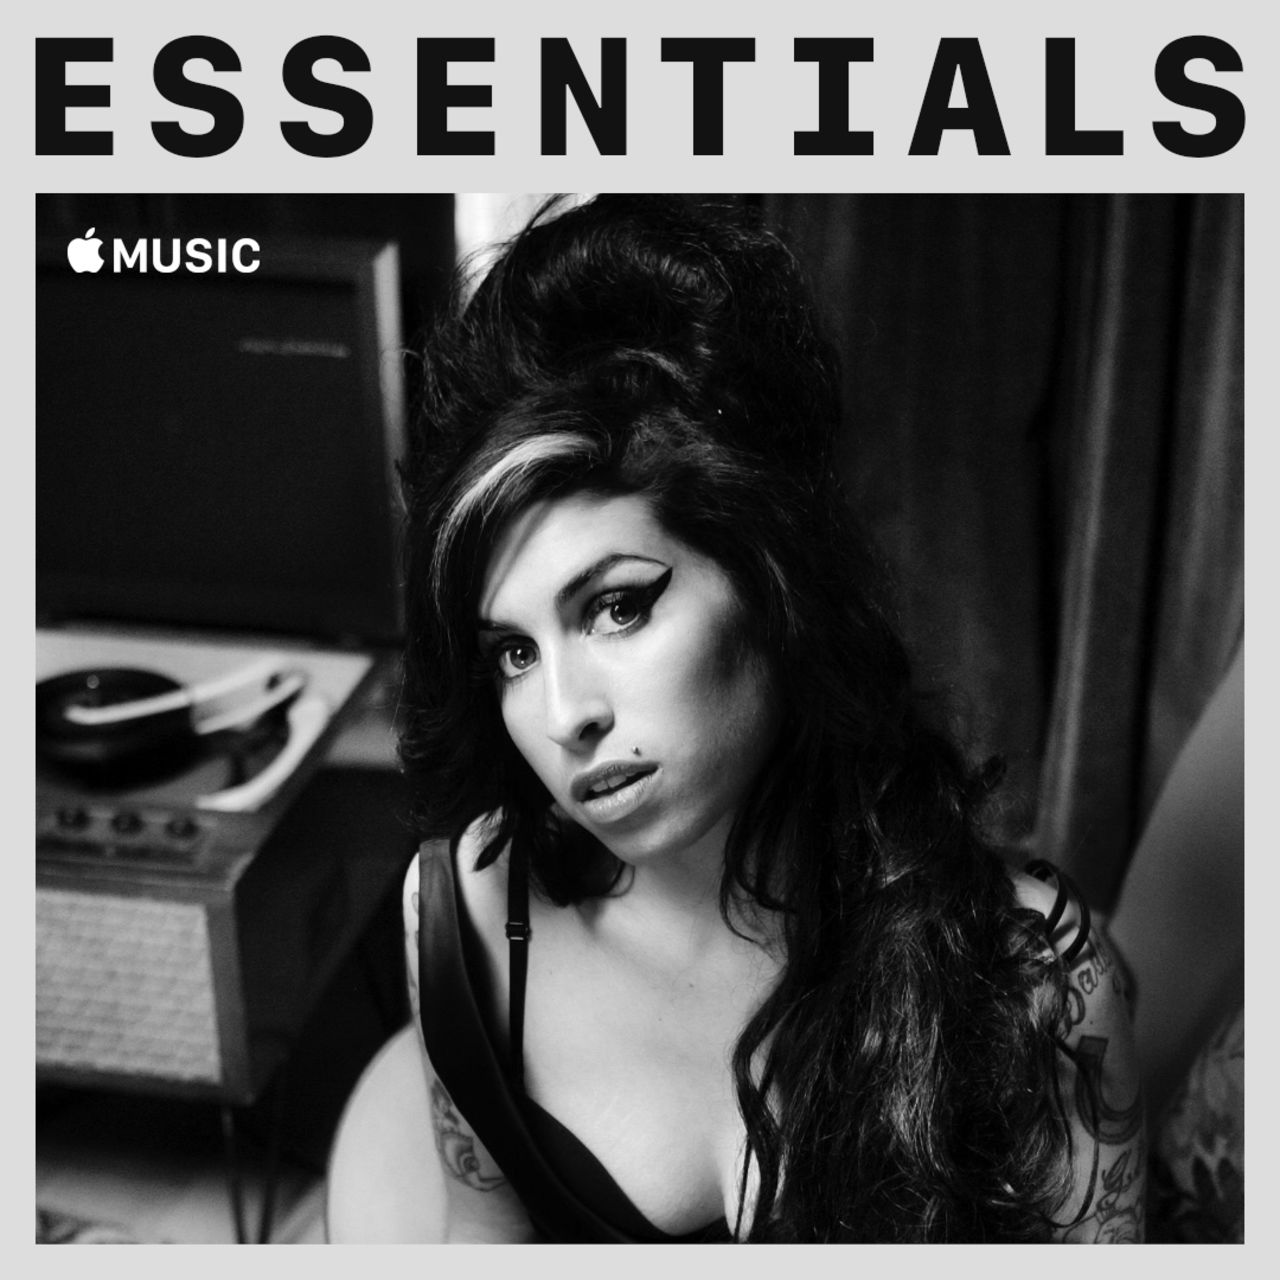 amy winehouse back to black album free download zip